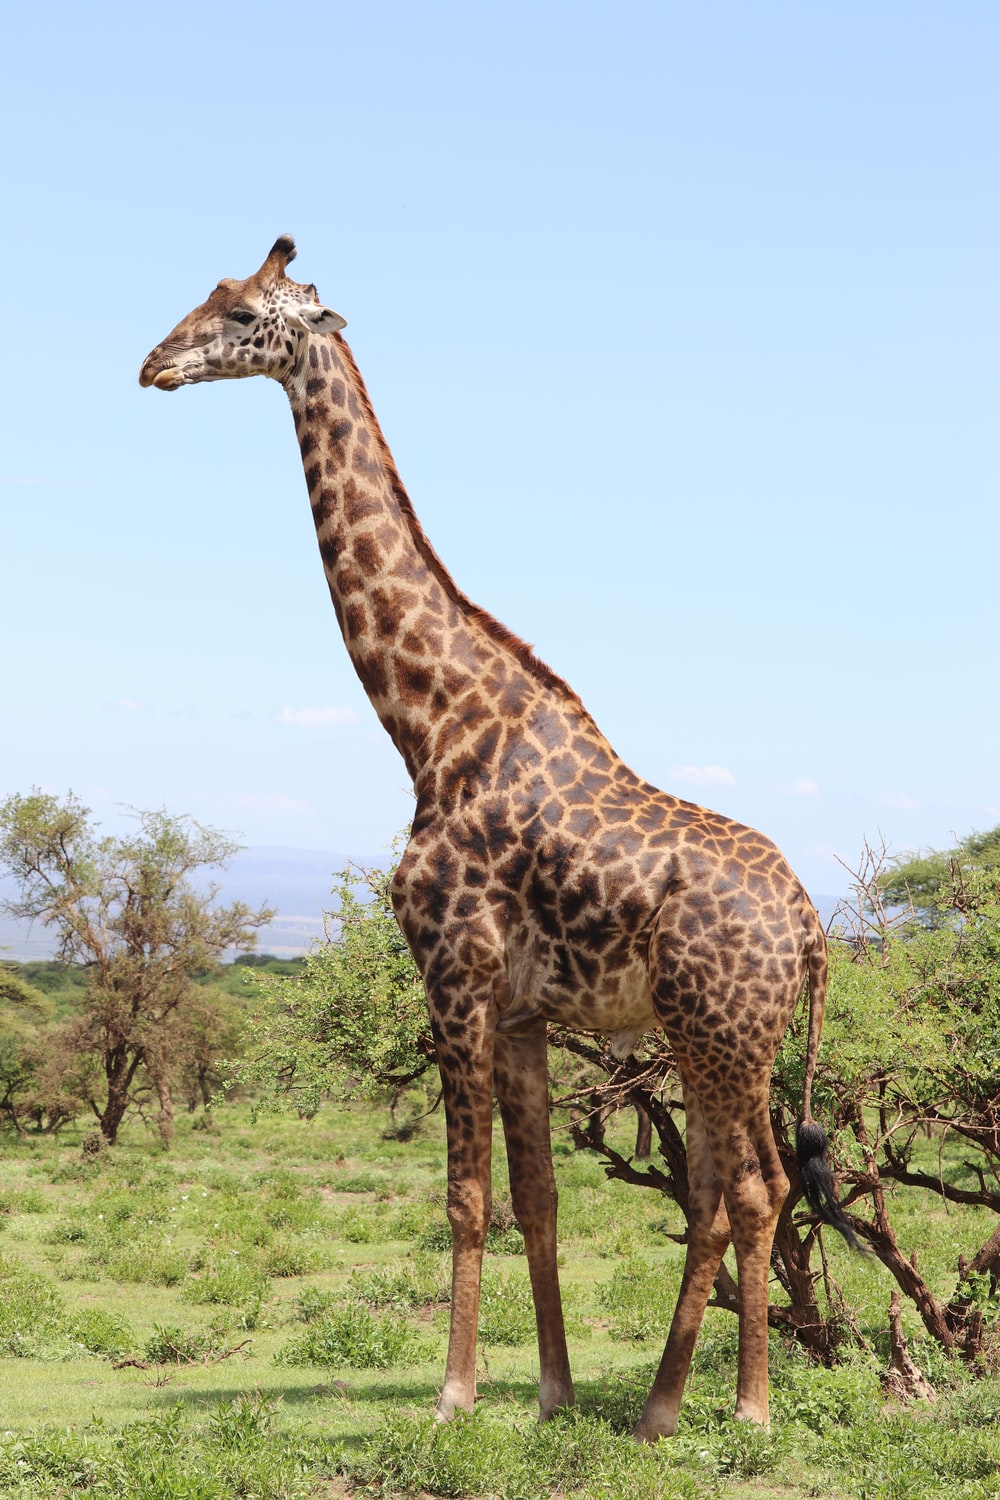 giraffe standing on green grass during daytime